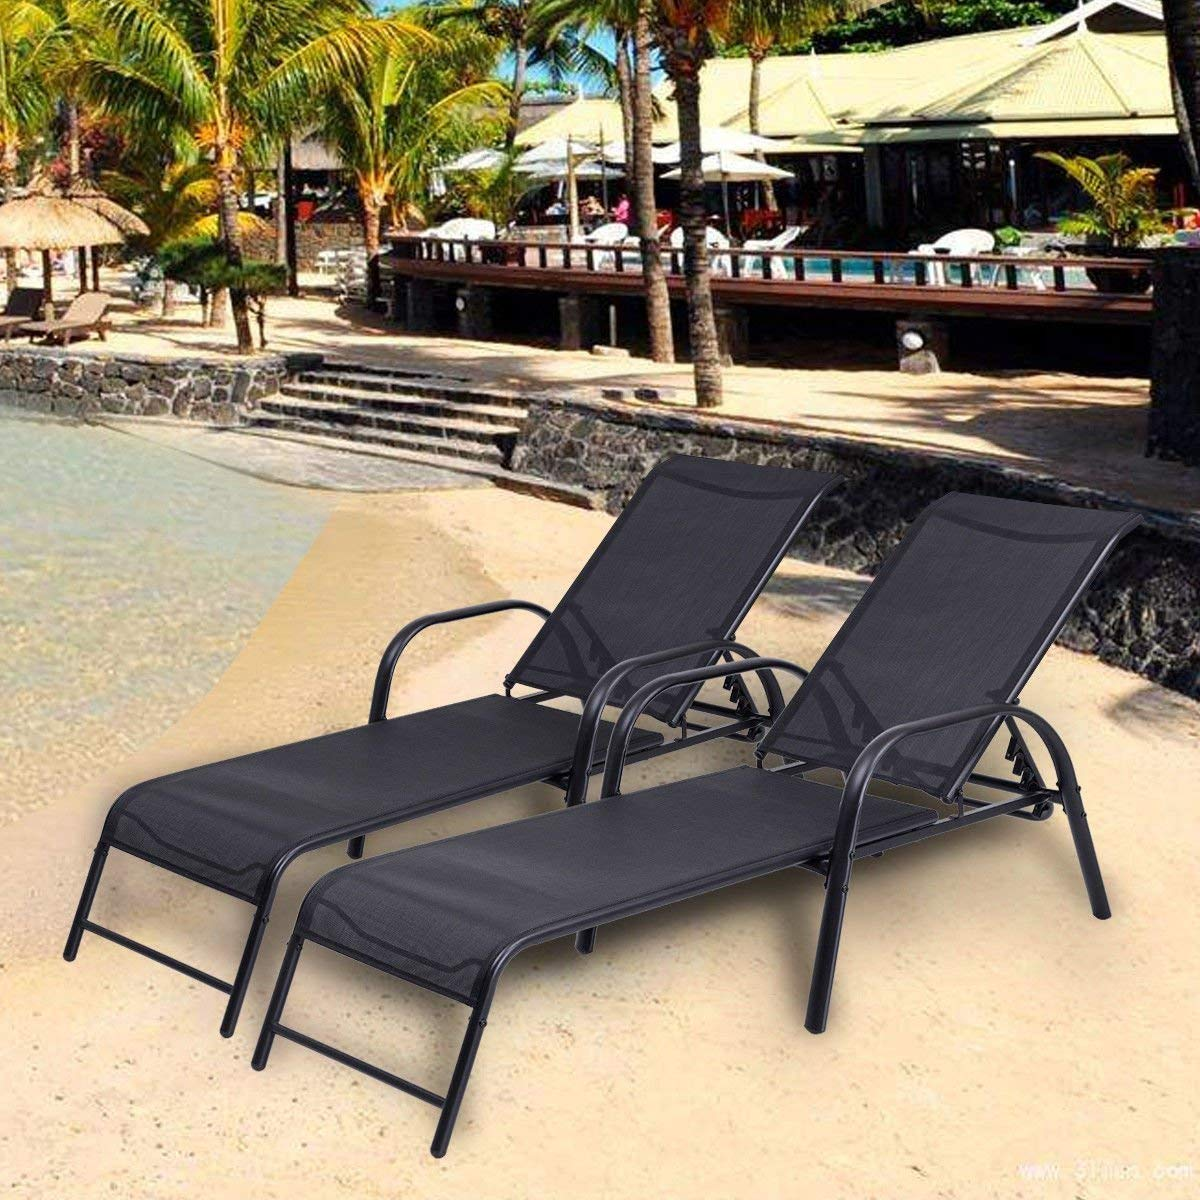 Cheap Discount Patio Chaise Lounges Find Discount Patio Chaise